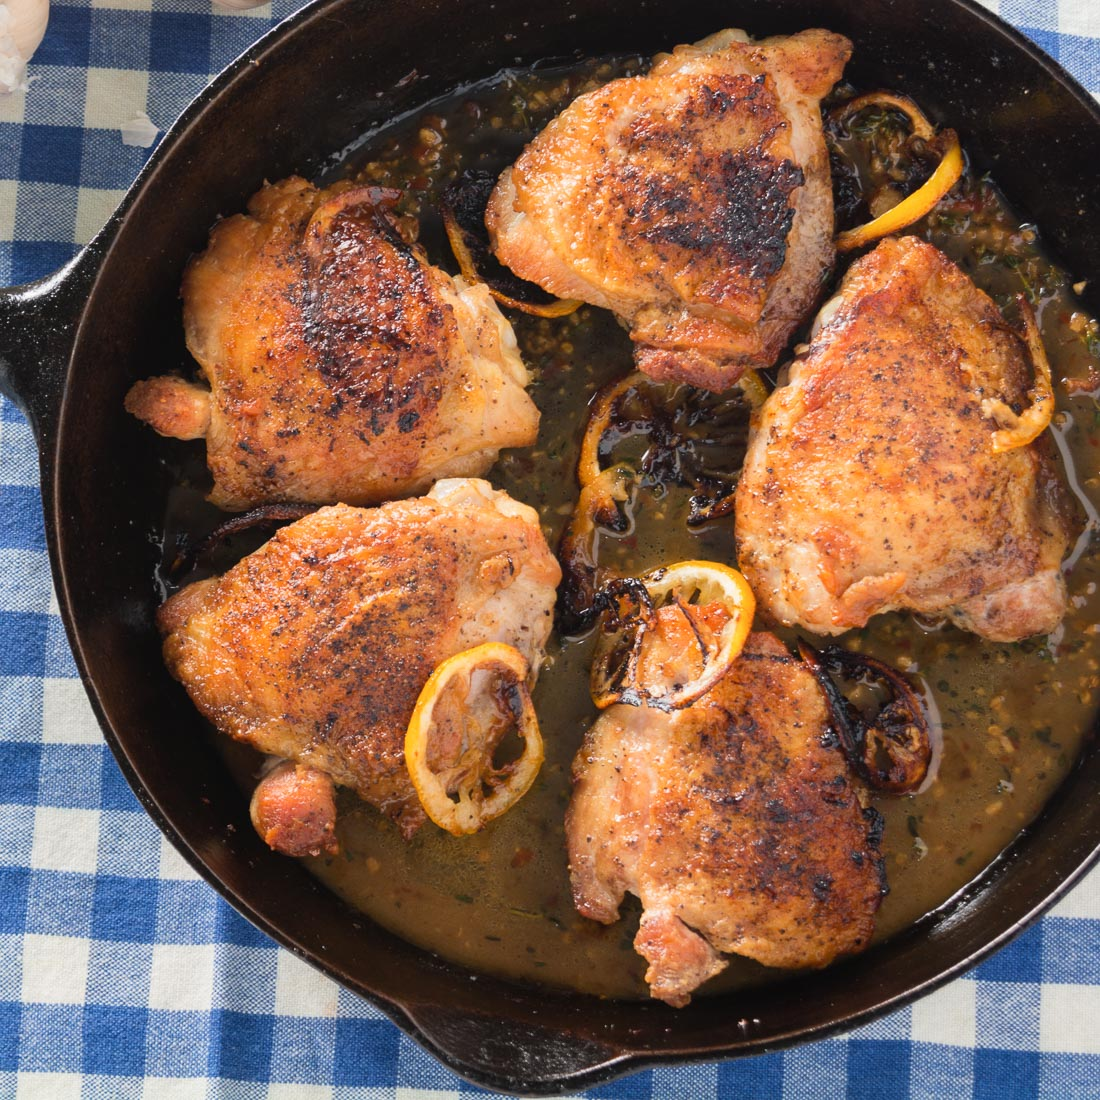 Lemon thyme and chicken thighs come together beautifully in a simple pan roasted dish perfect for a special weeknight dinner.